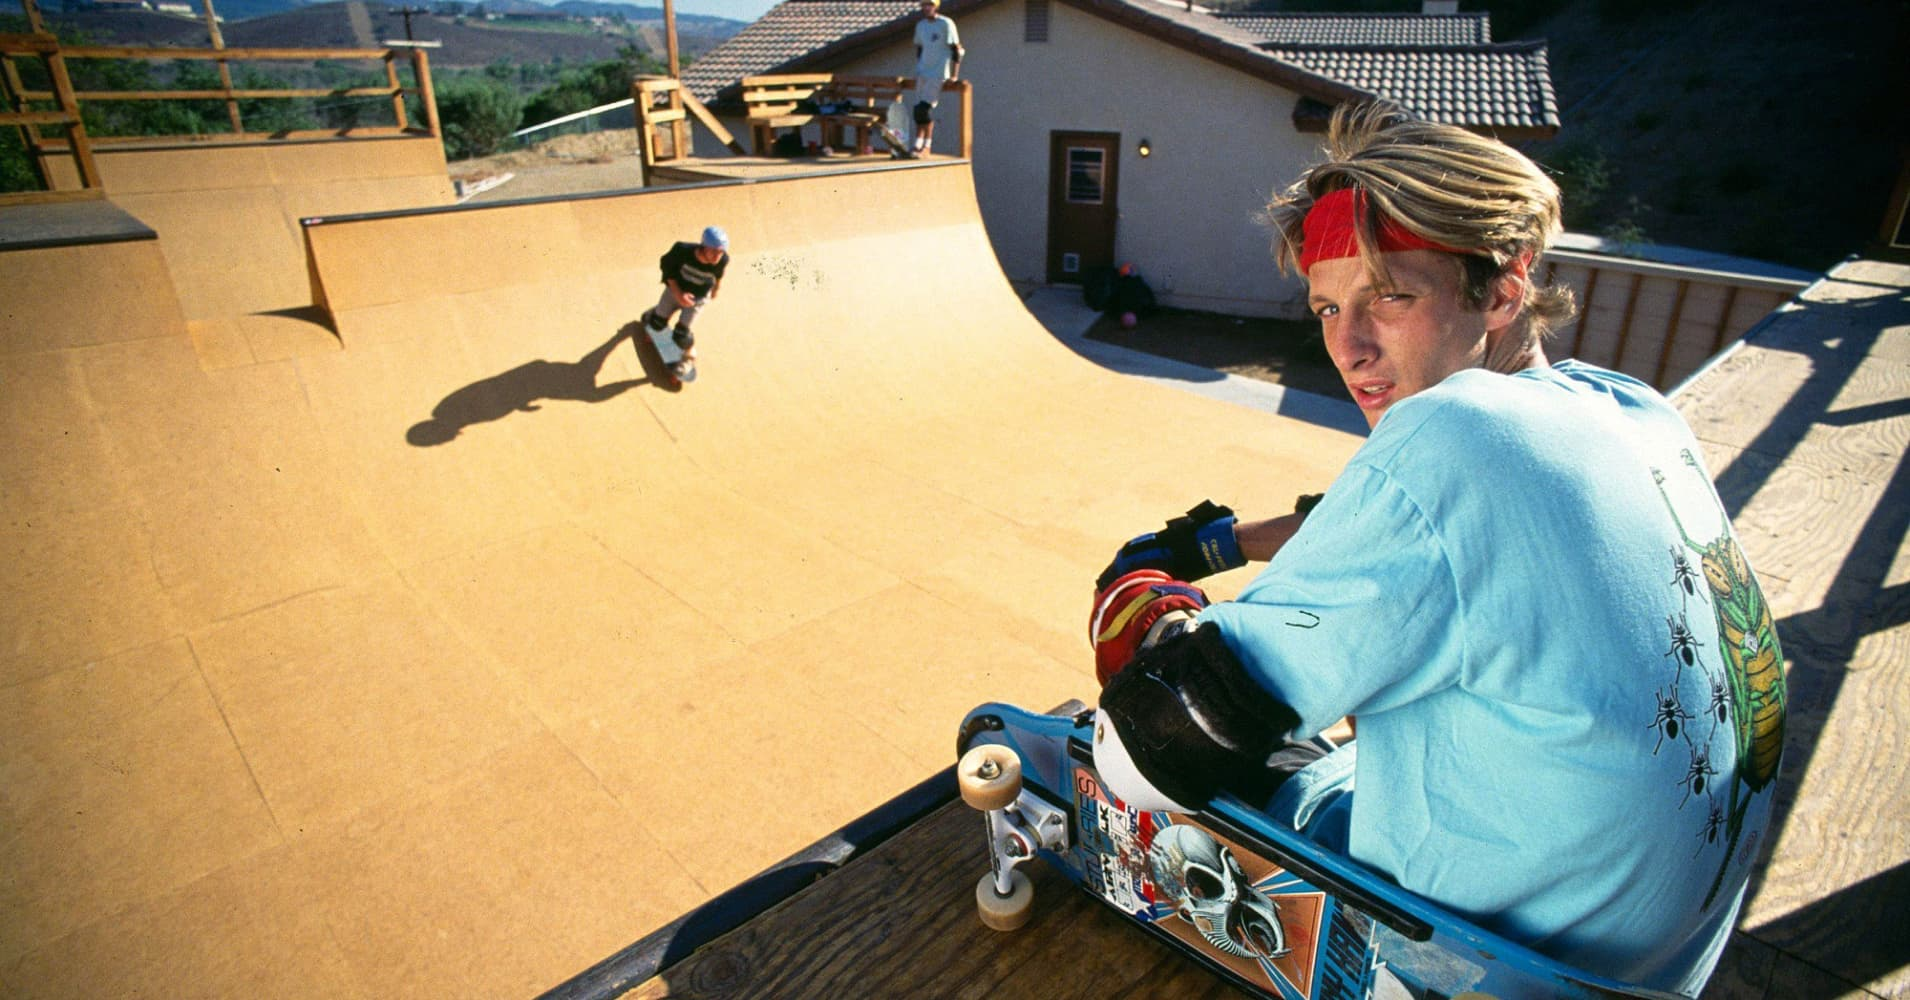 Tony Hawk: Buying a house was one of his smartest investments